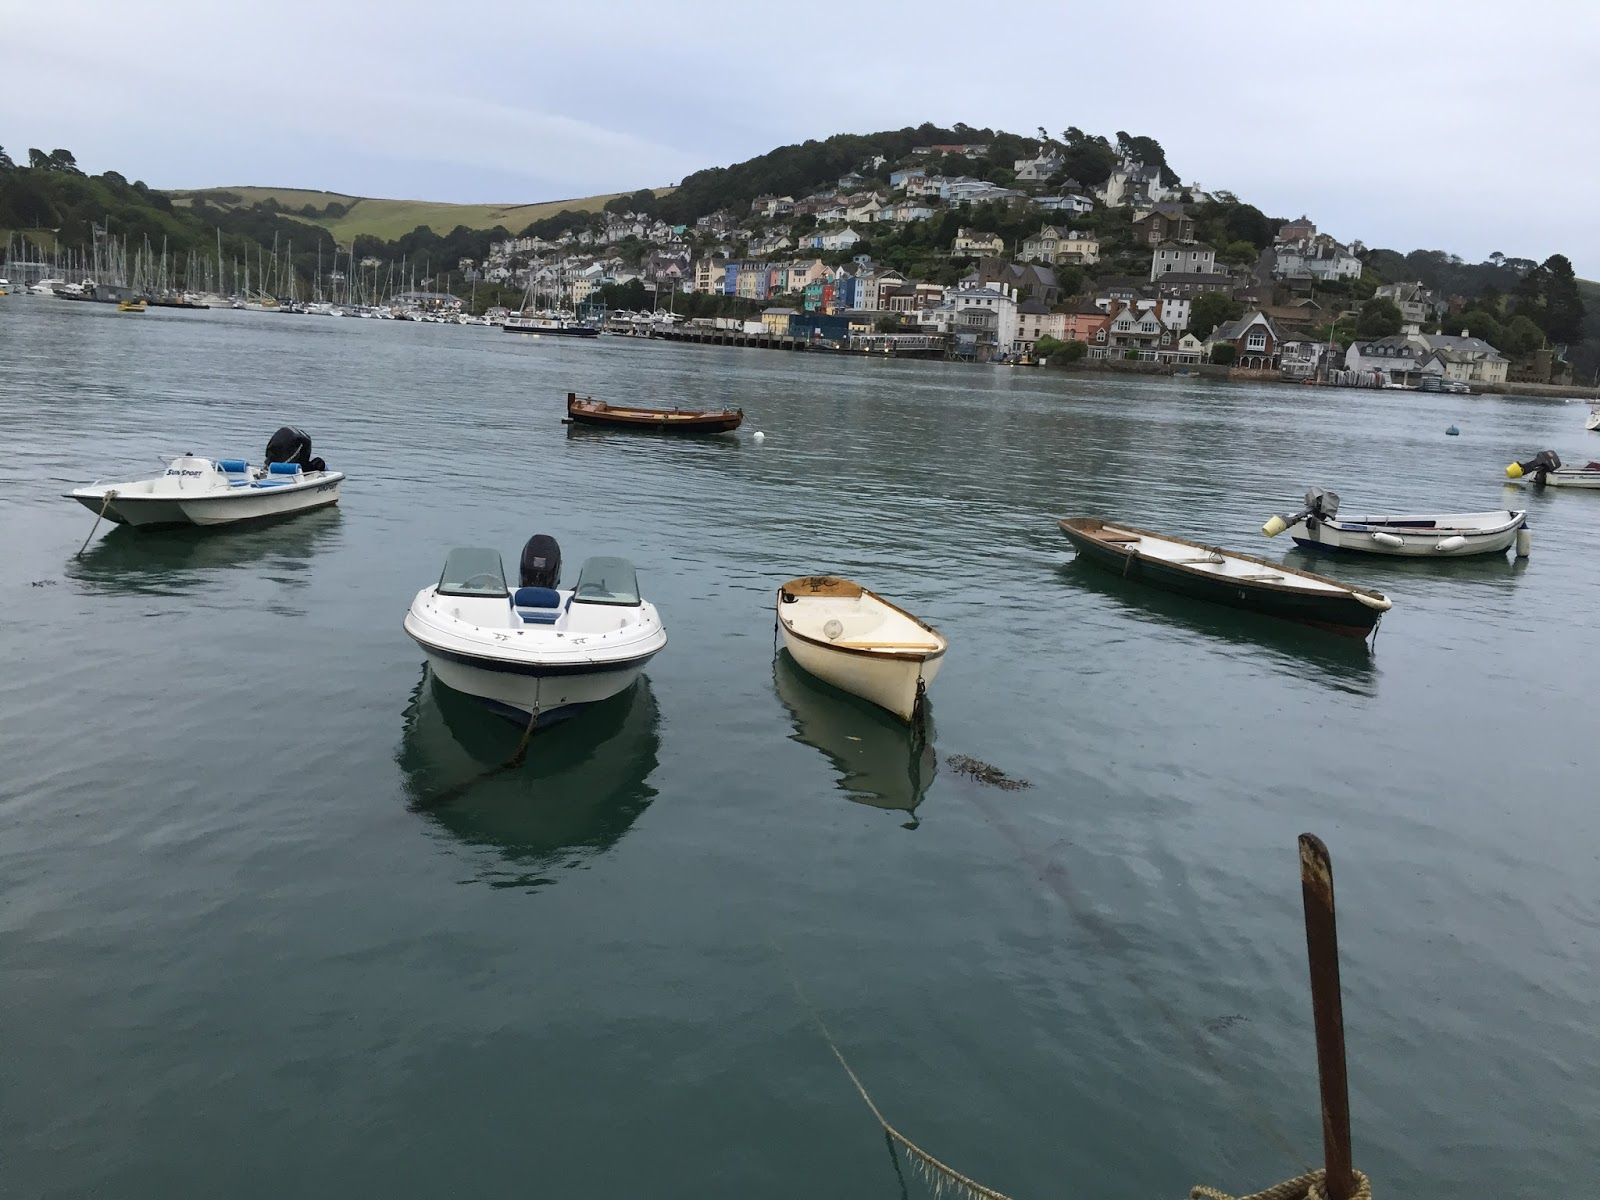 Dartmouth boats